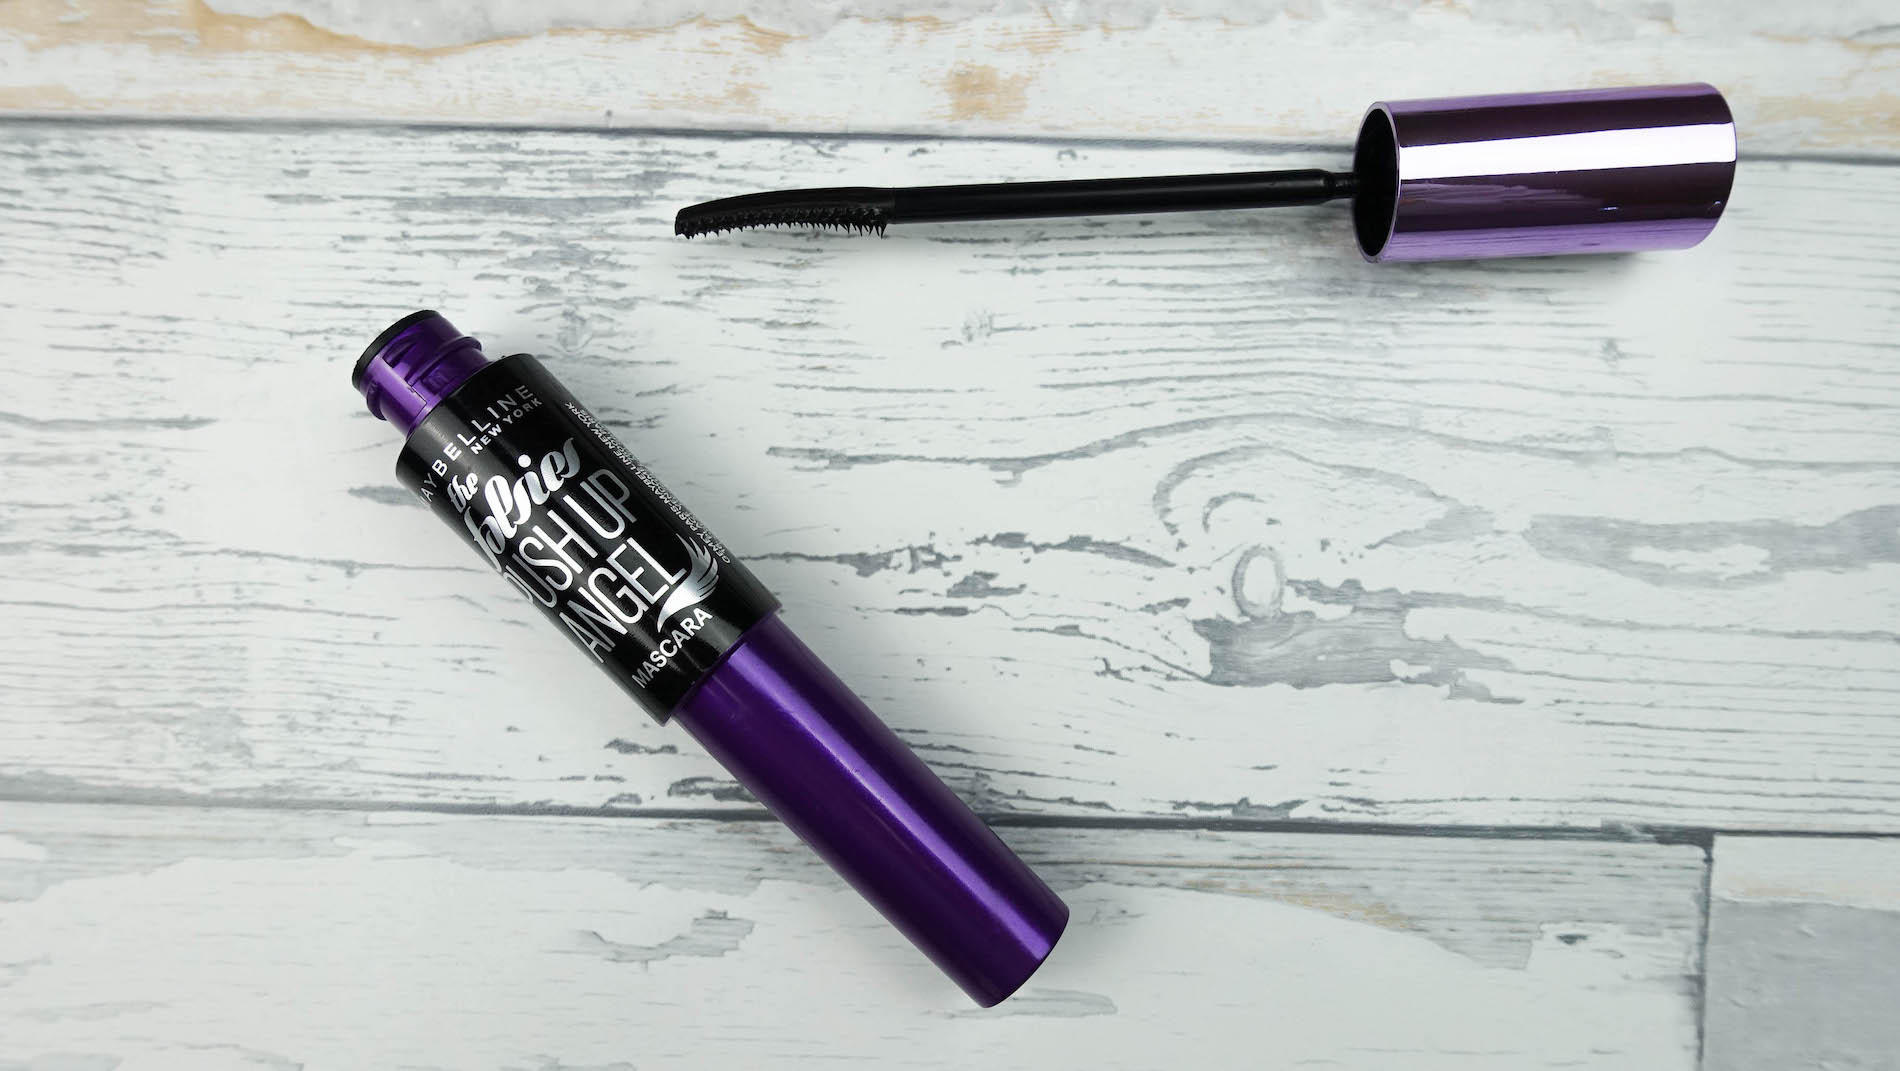 suelovesnyc_susan_fengler_sue_loves_nyc_beauty_blog_drogerie_mascara_test_maybelline_push_up_angel